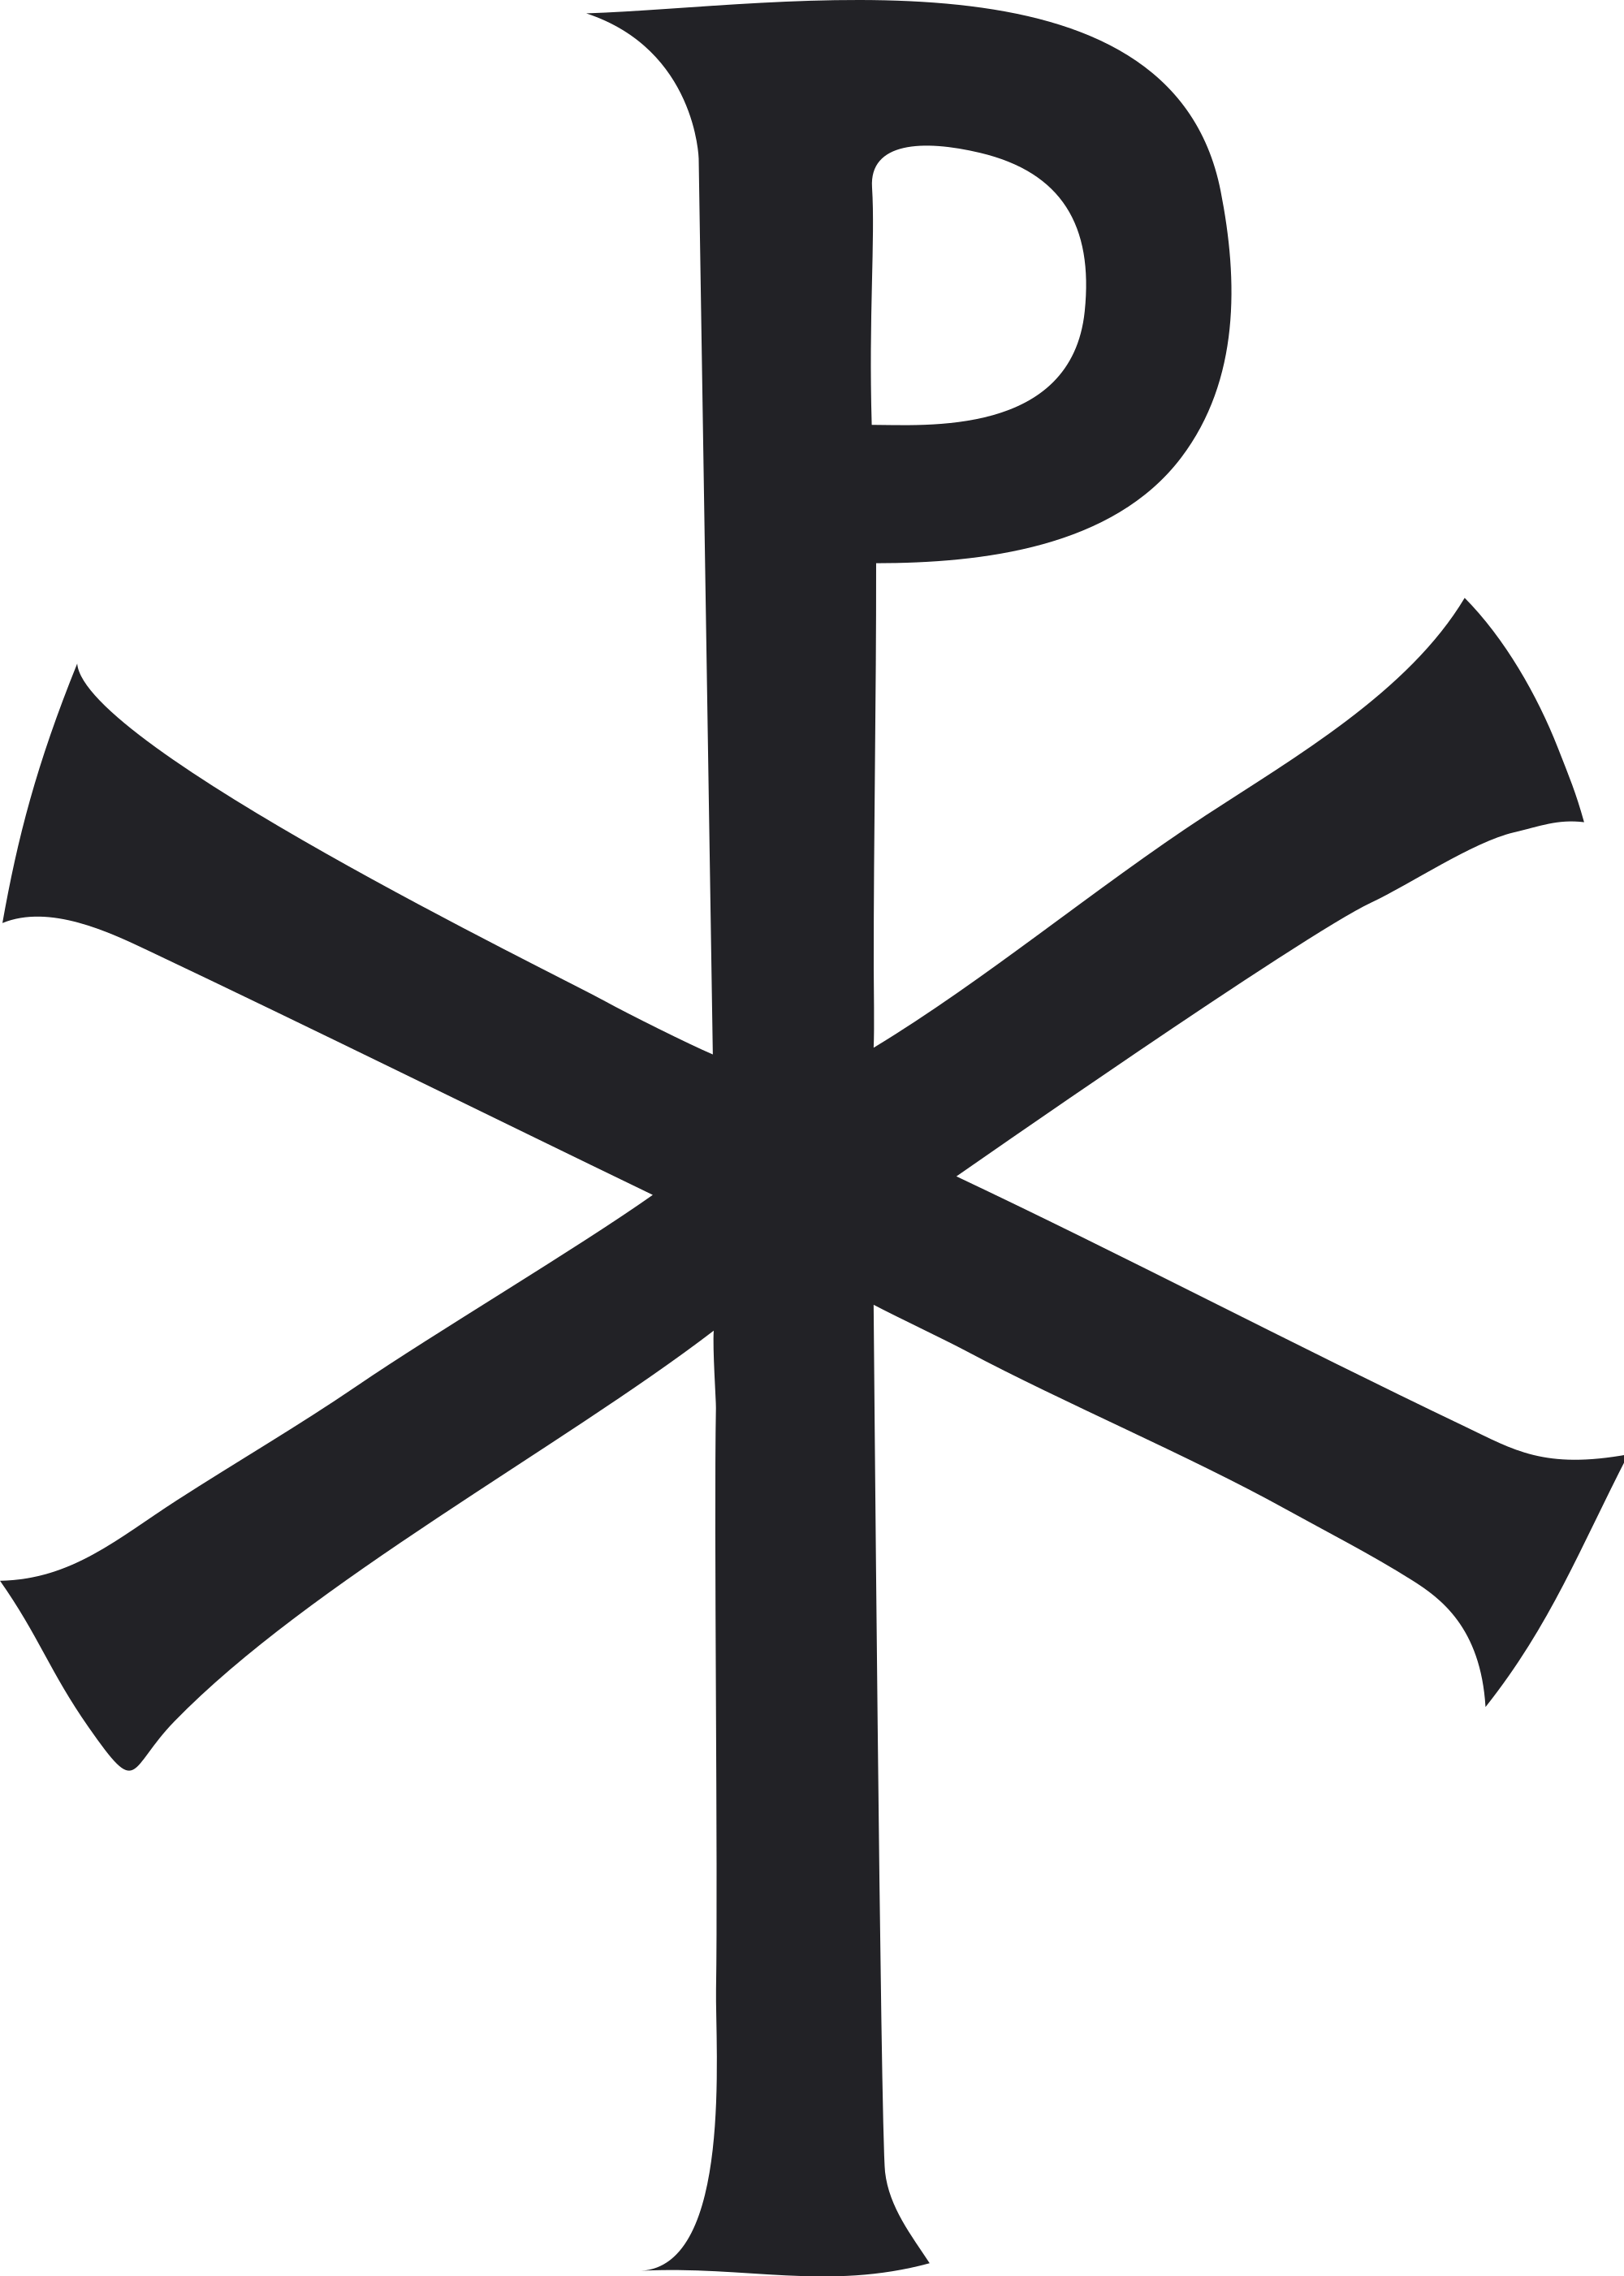 Orthodox bishop crown black and white clipart transparent Christogram - Wikipedia transparent